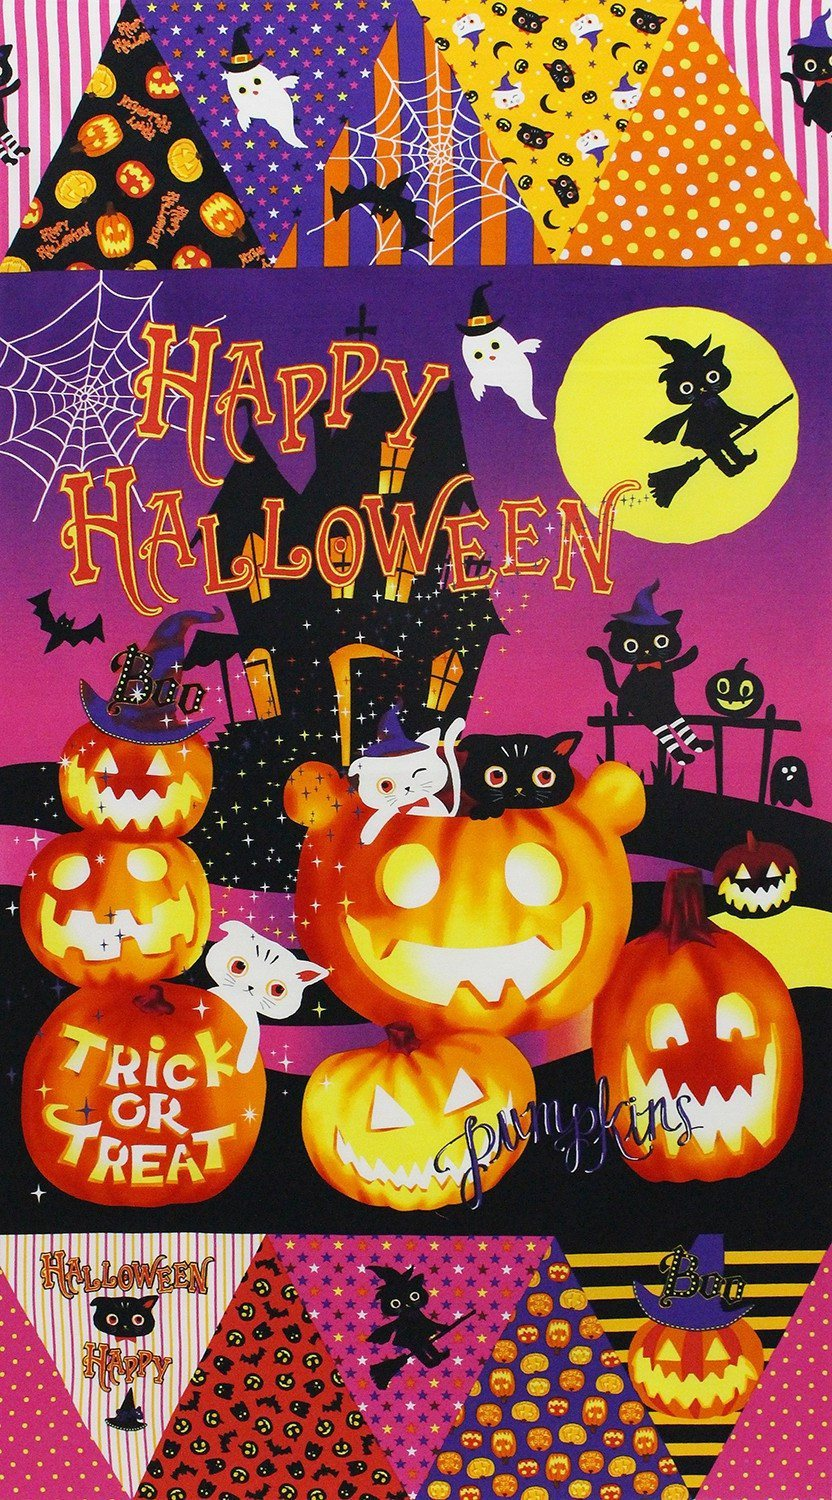 Happy Halloween Fabric Panel by Lecien of Japan 24 x 27 Inches